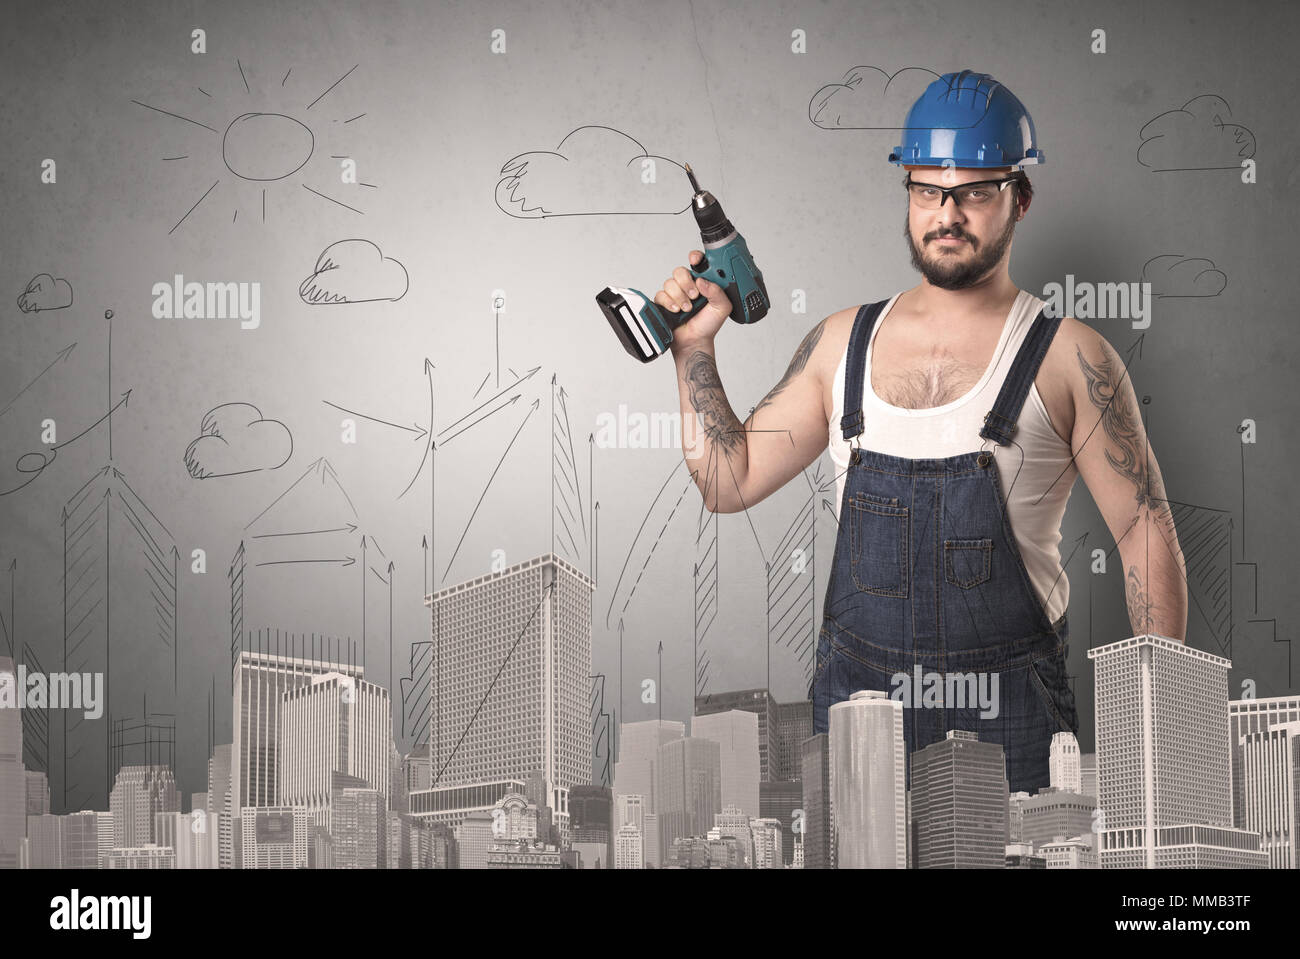 Handyman with tool in his hand and cityscape nearby. - Stock Image